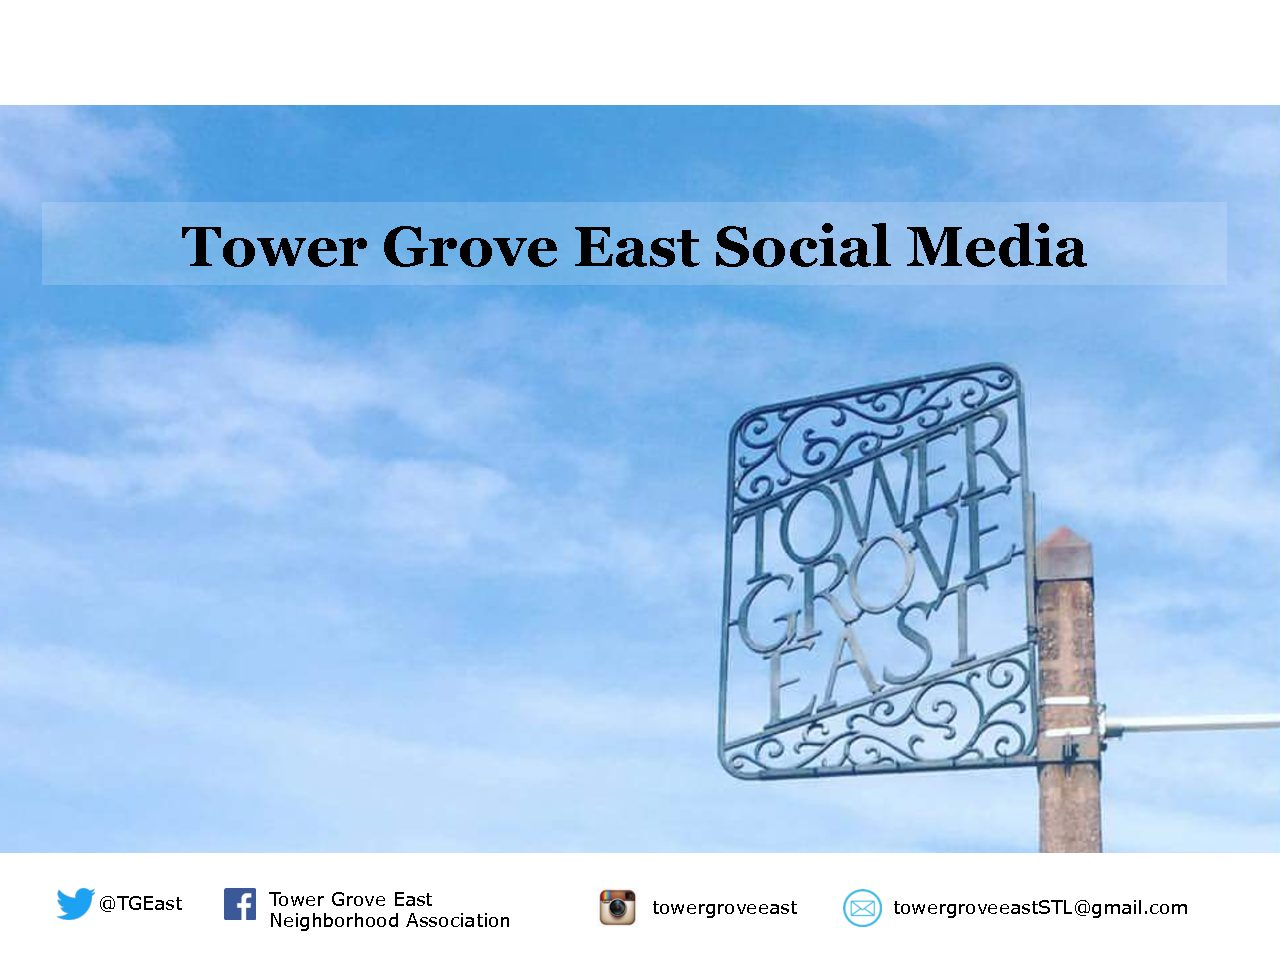 Tower Grove East Social Media